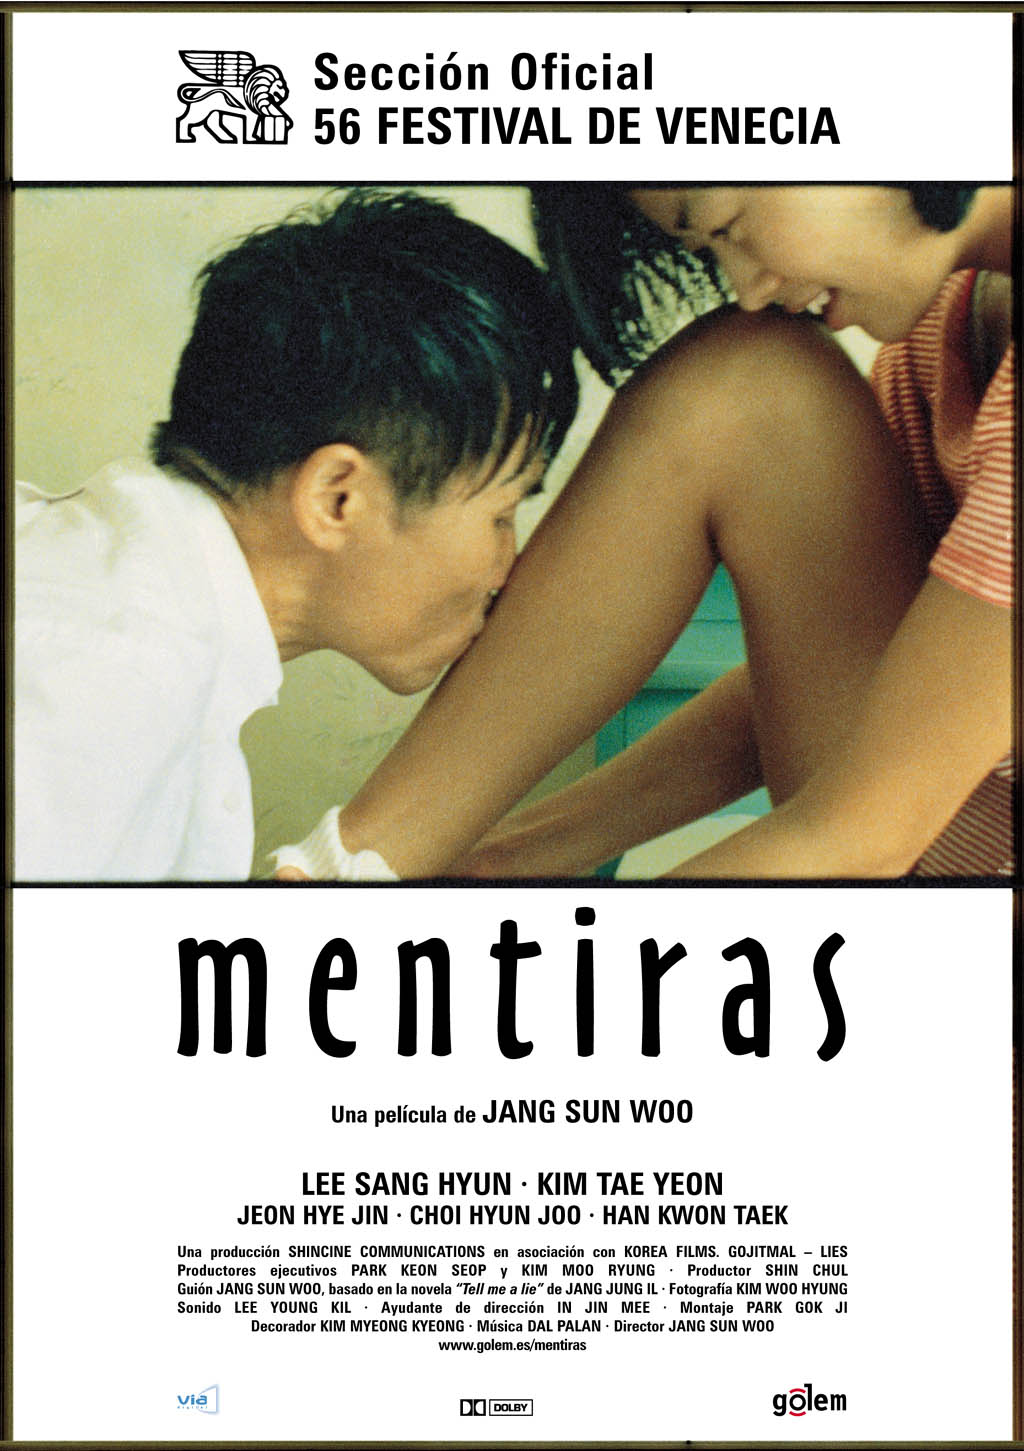 Mentiras+(1999).jpg